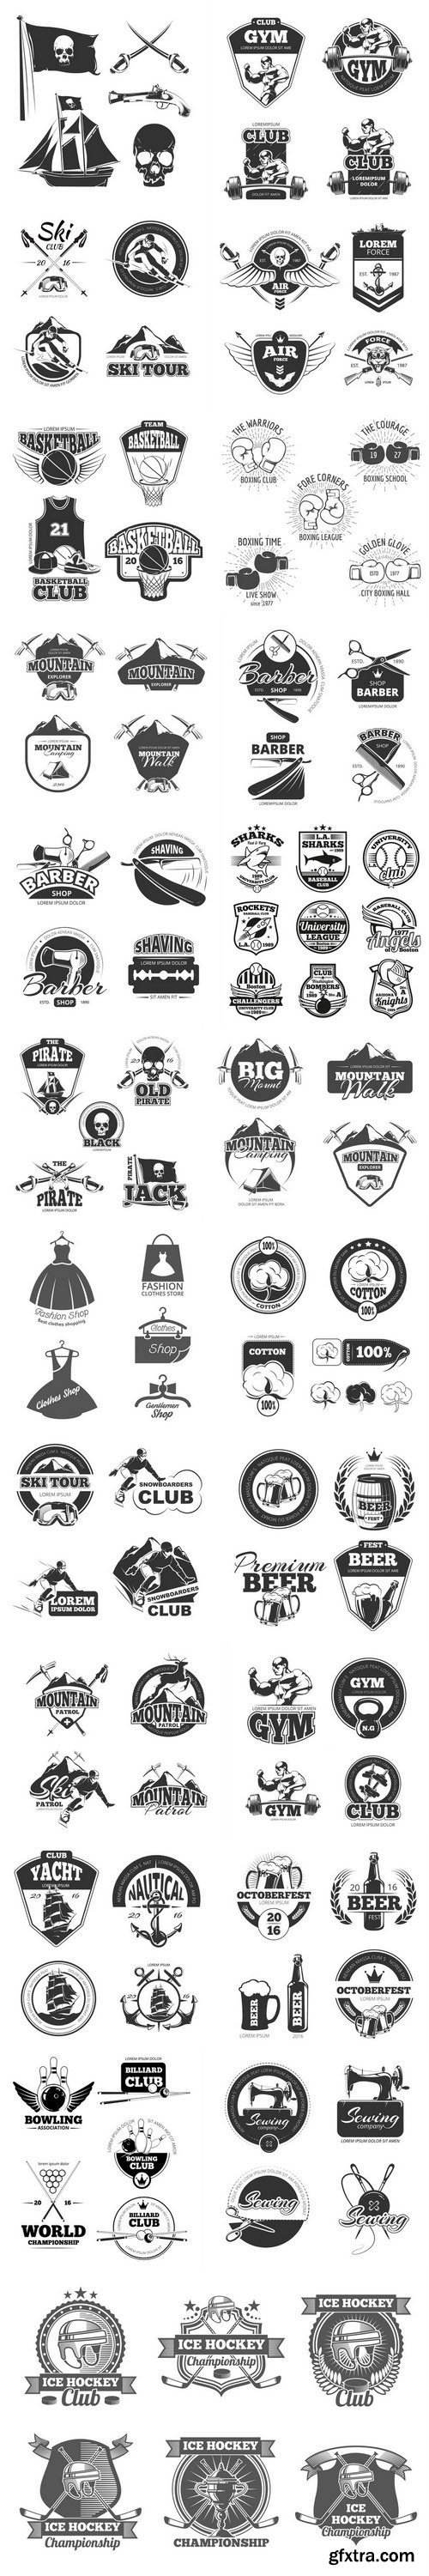 Emblem and logo set 2 - 23xEPS